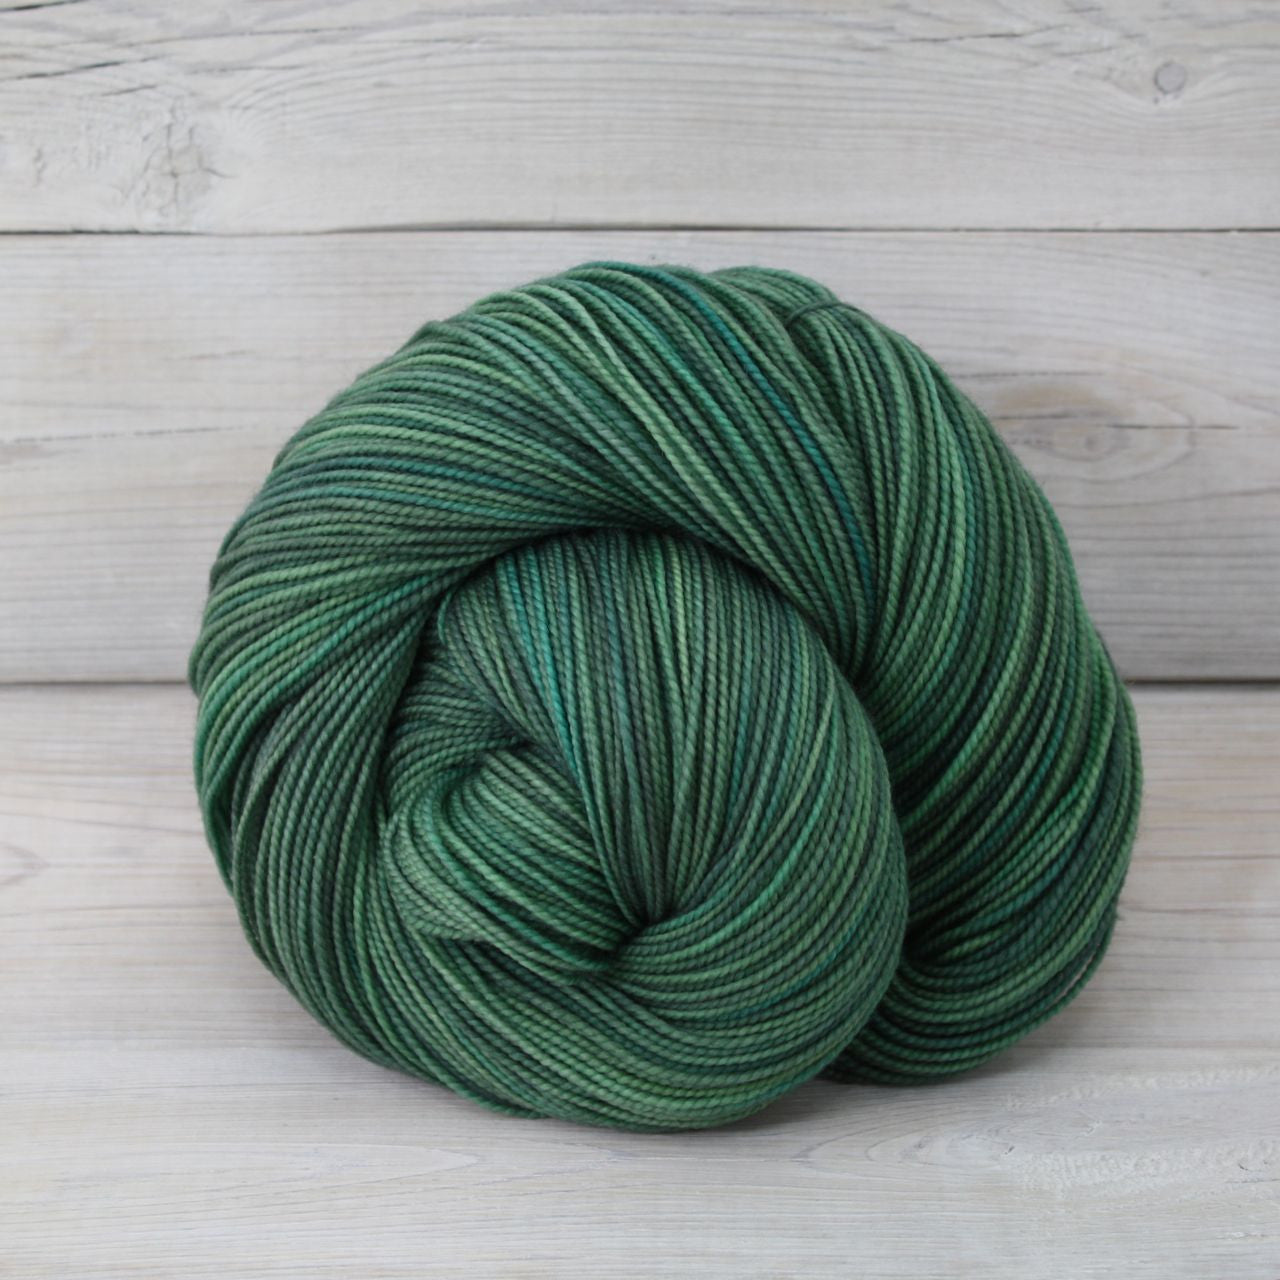 Luna Grey Fiber Arts Celeste Yarn | Colorway: Spruce